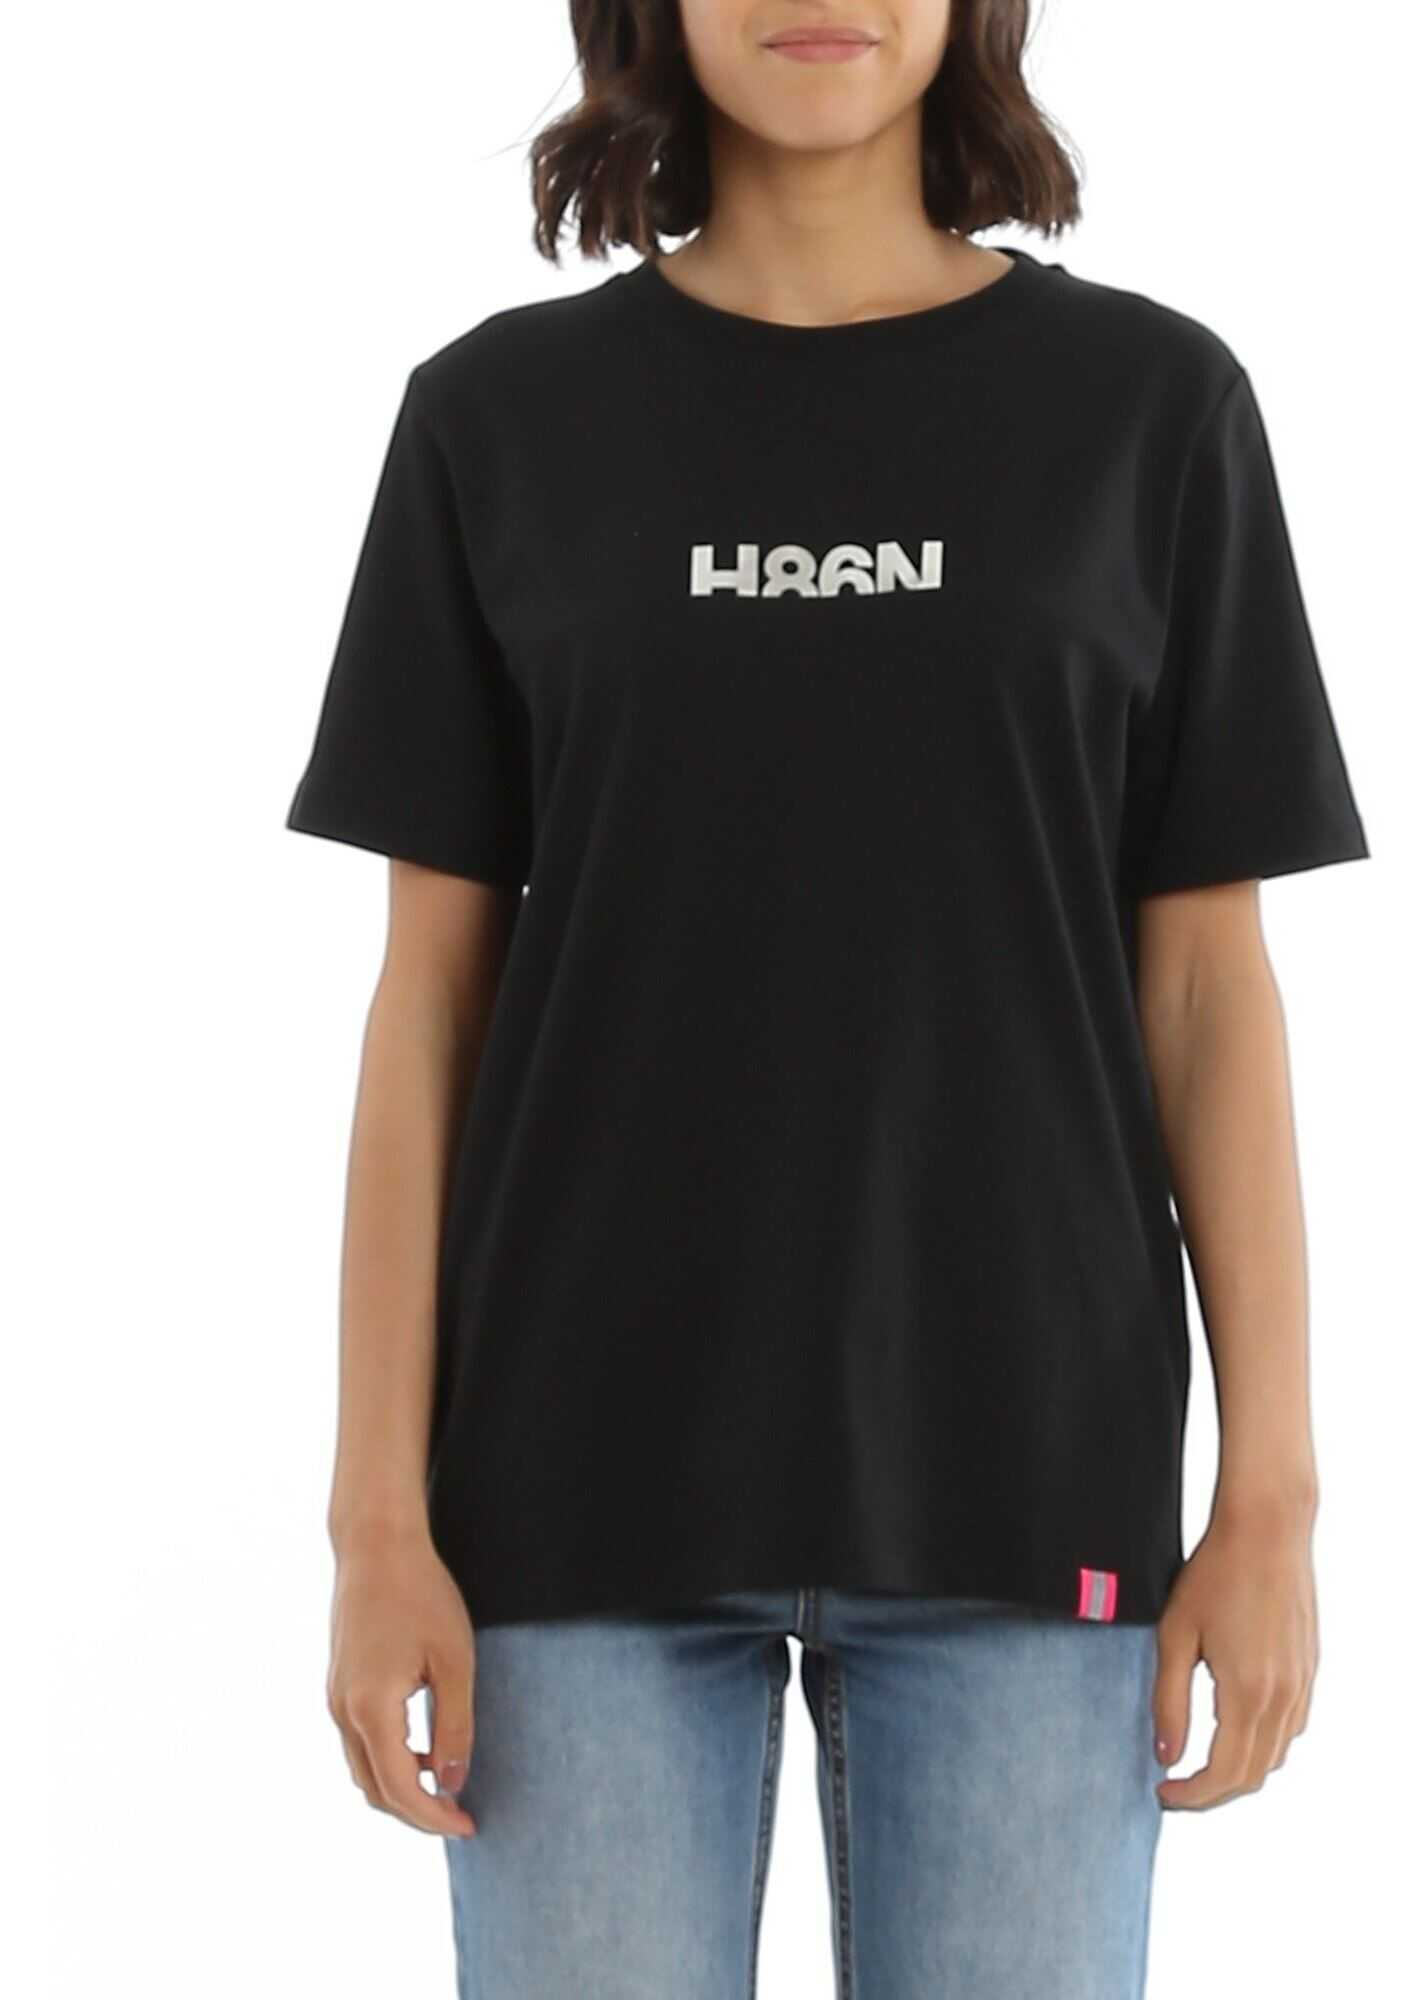 Hogan H86N Cotton T-Shirt In Black Black